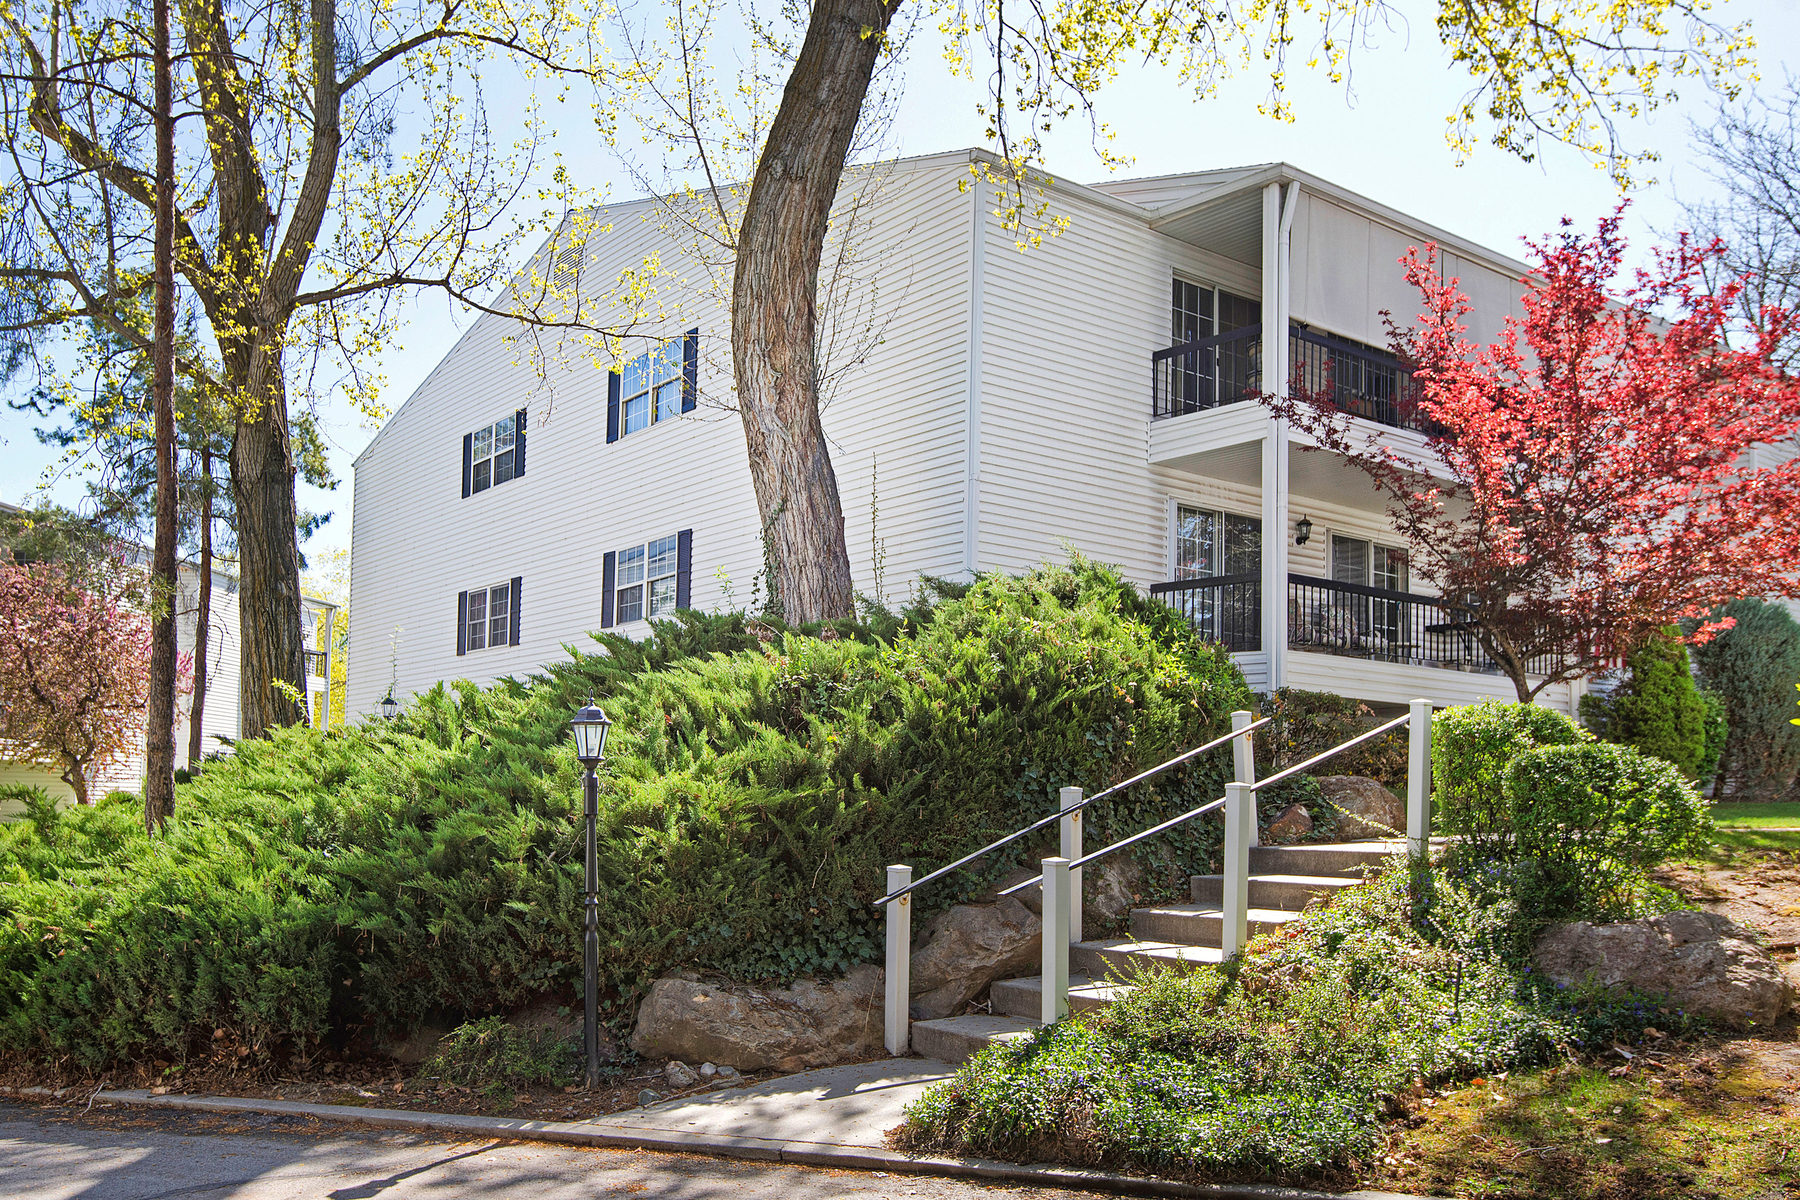 Condominium for Sale at Wonderful condo in the beautiful Old Farm community! 4107 South 670 East Unit #A Murray, Utah 84107 United States